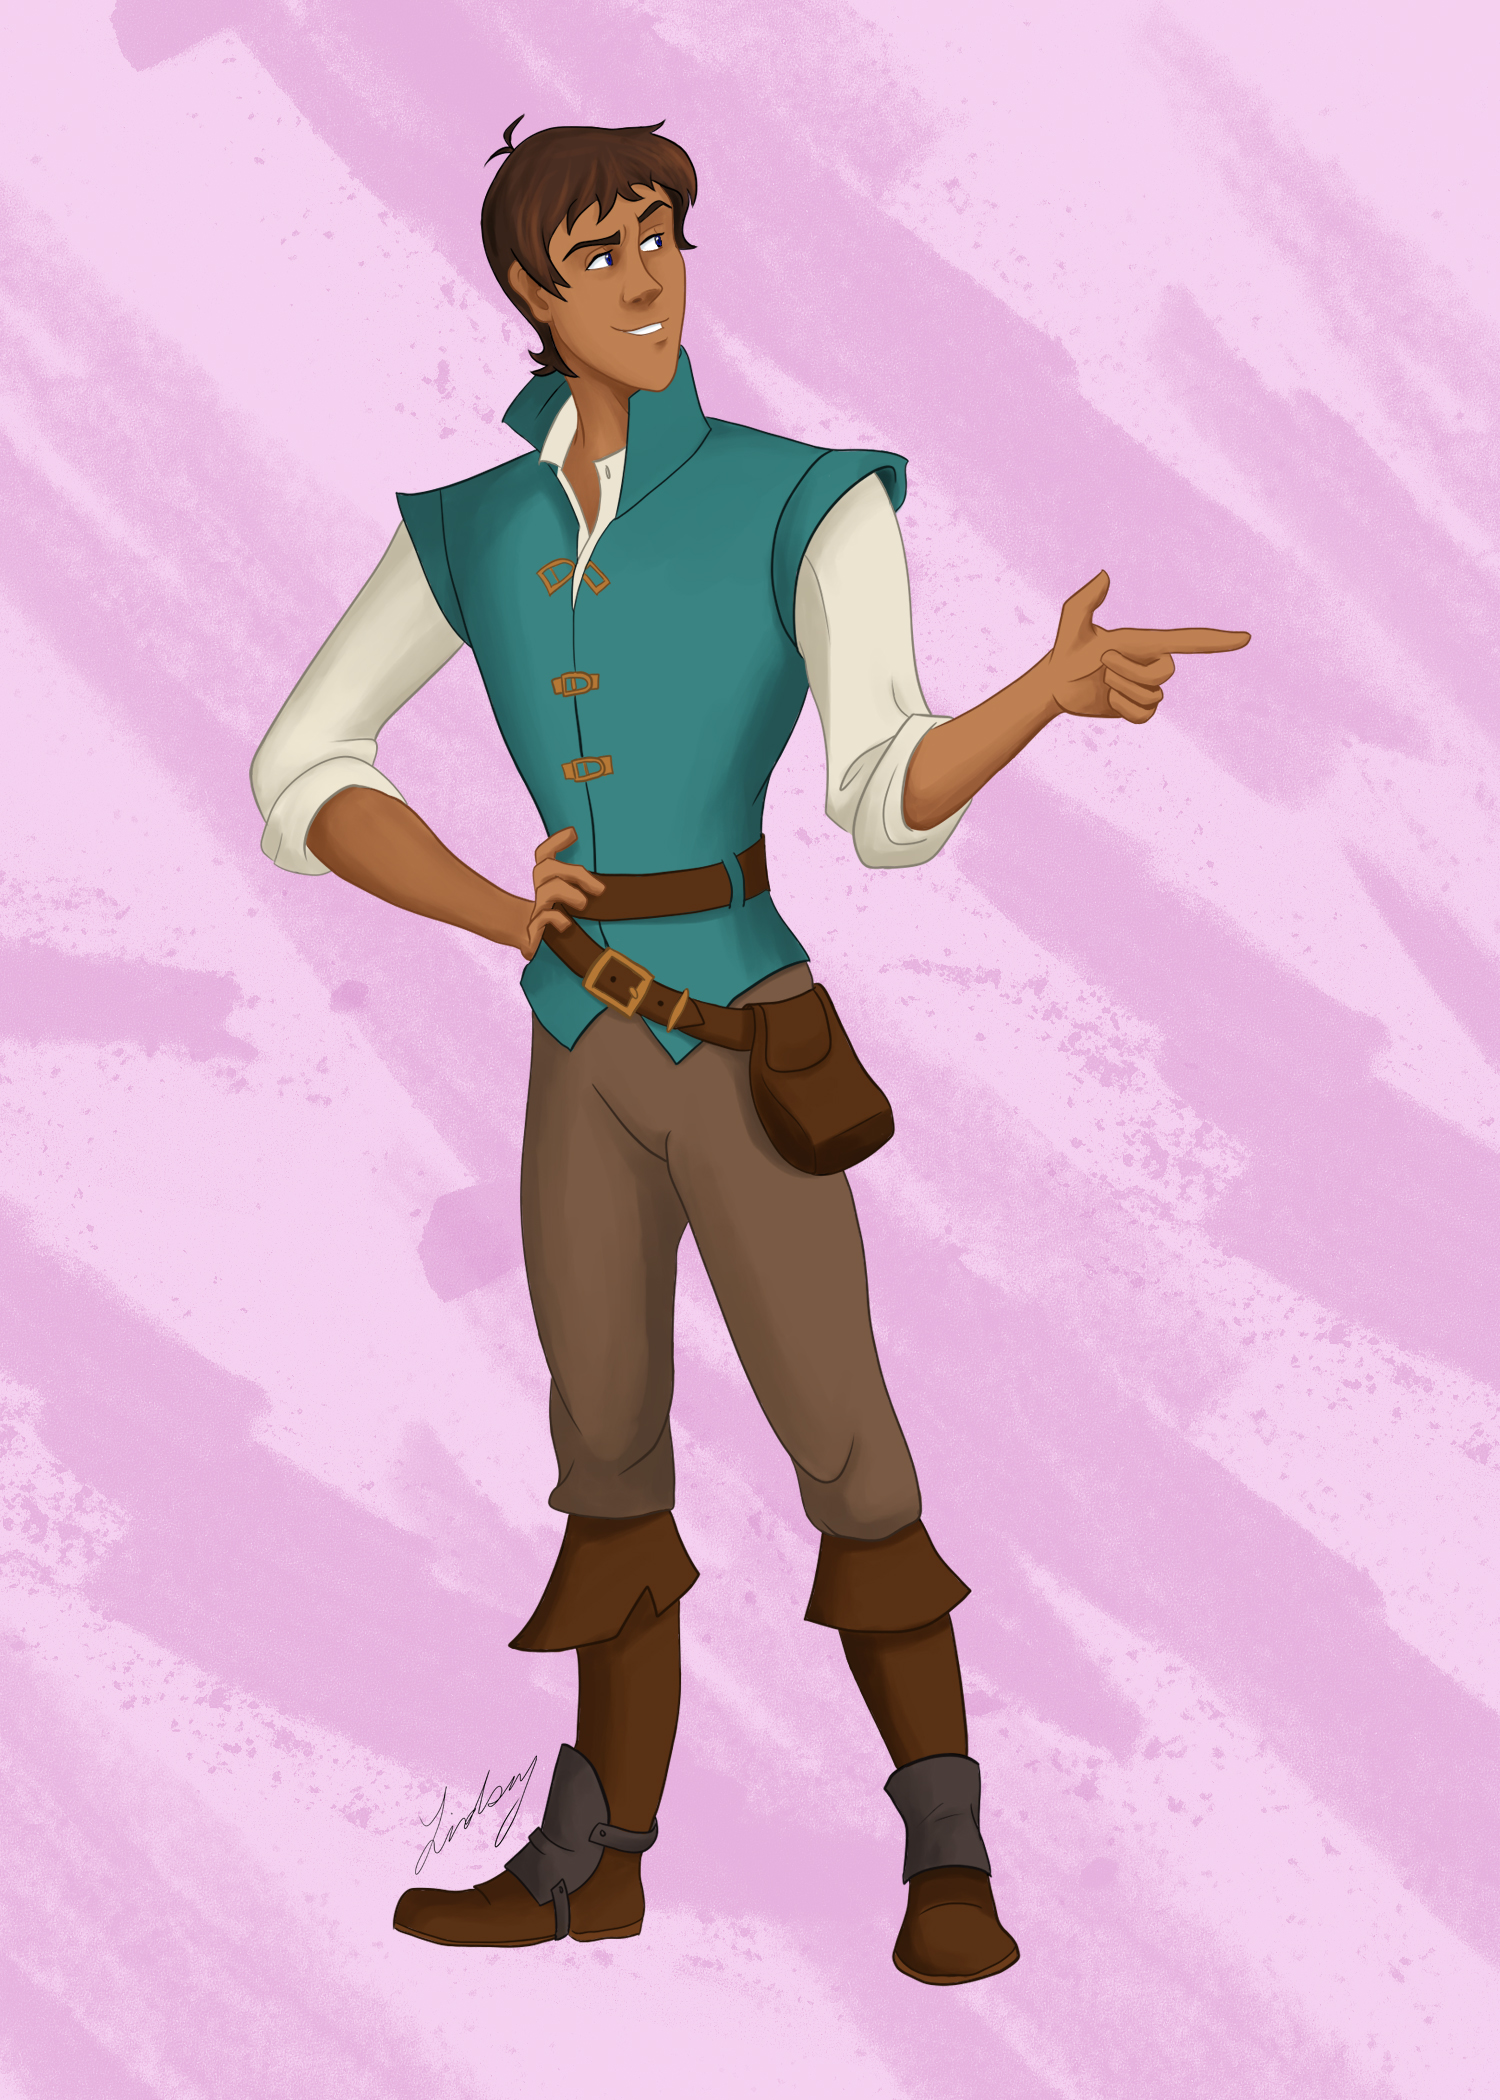 Lance as Flynn digital painting. 2019.